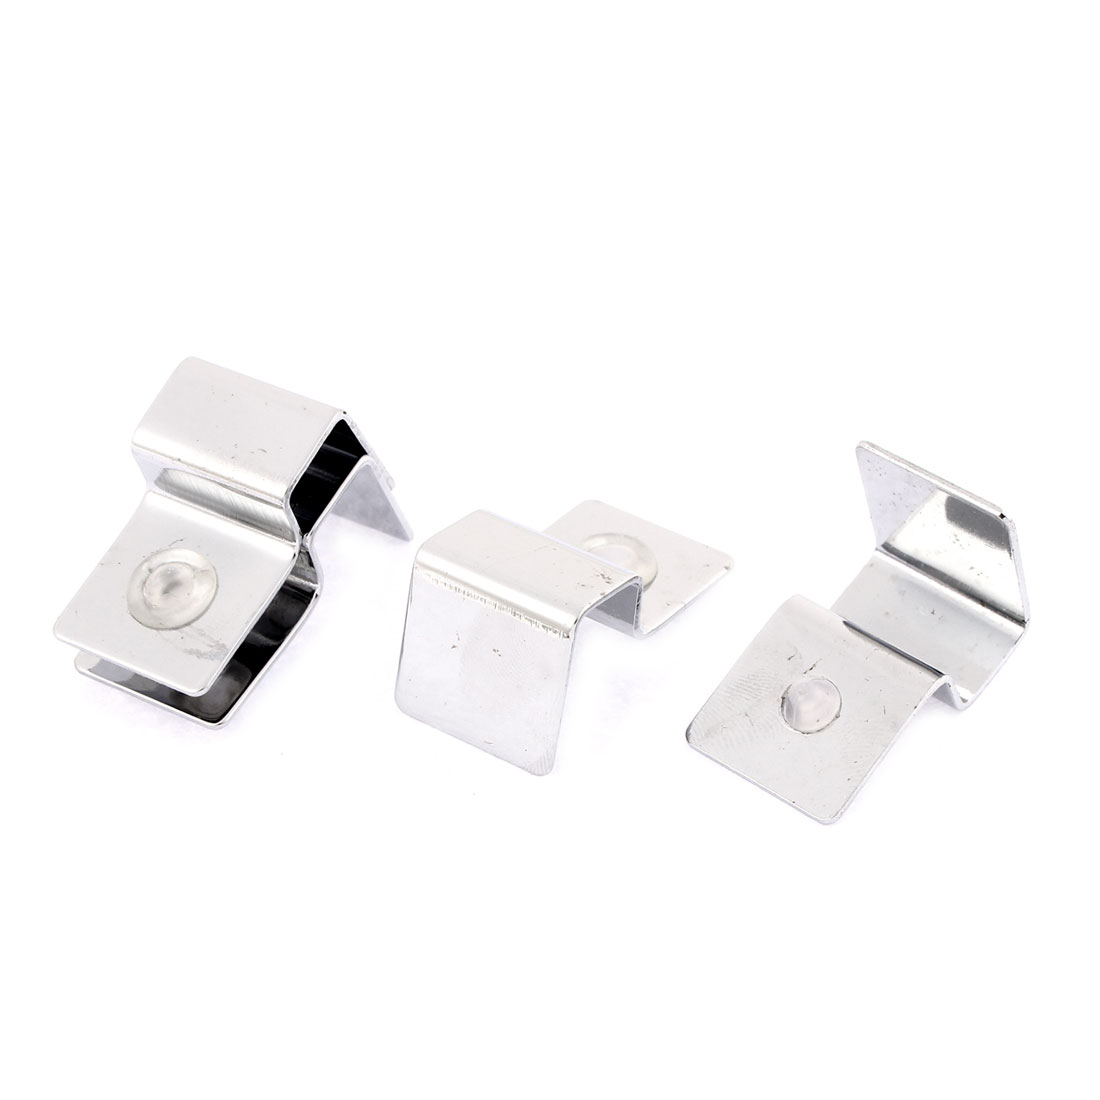 Aquarium Glass Cover Stainless Steel Thermo Brackets Clip Support Holder 4pcs